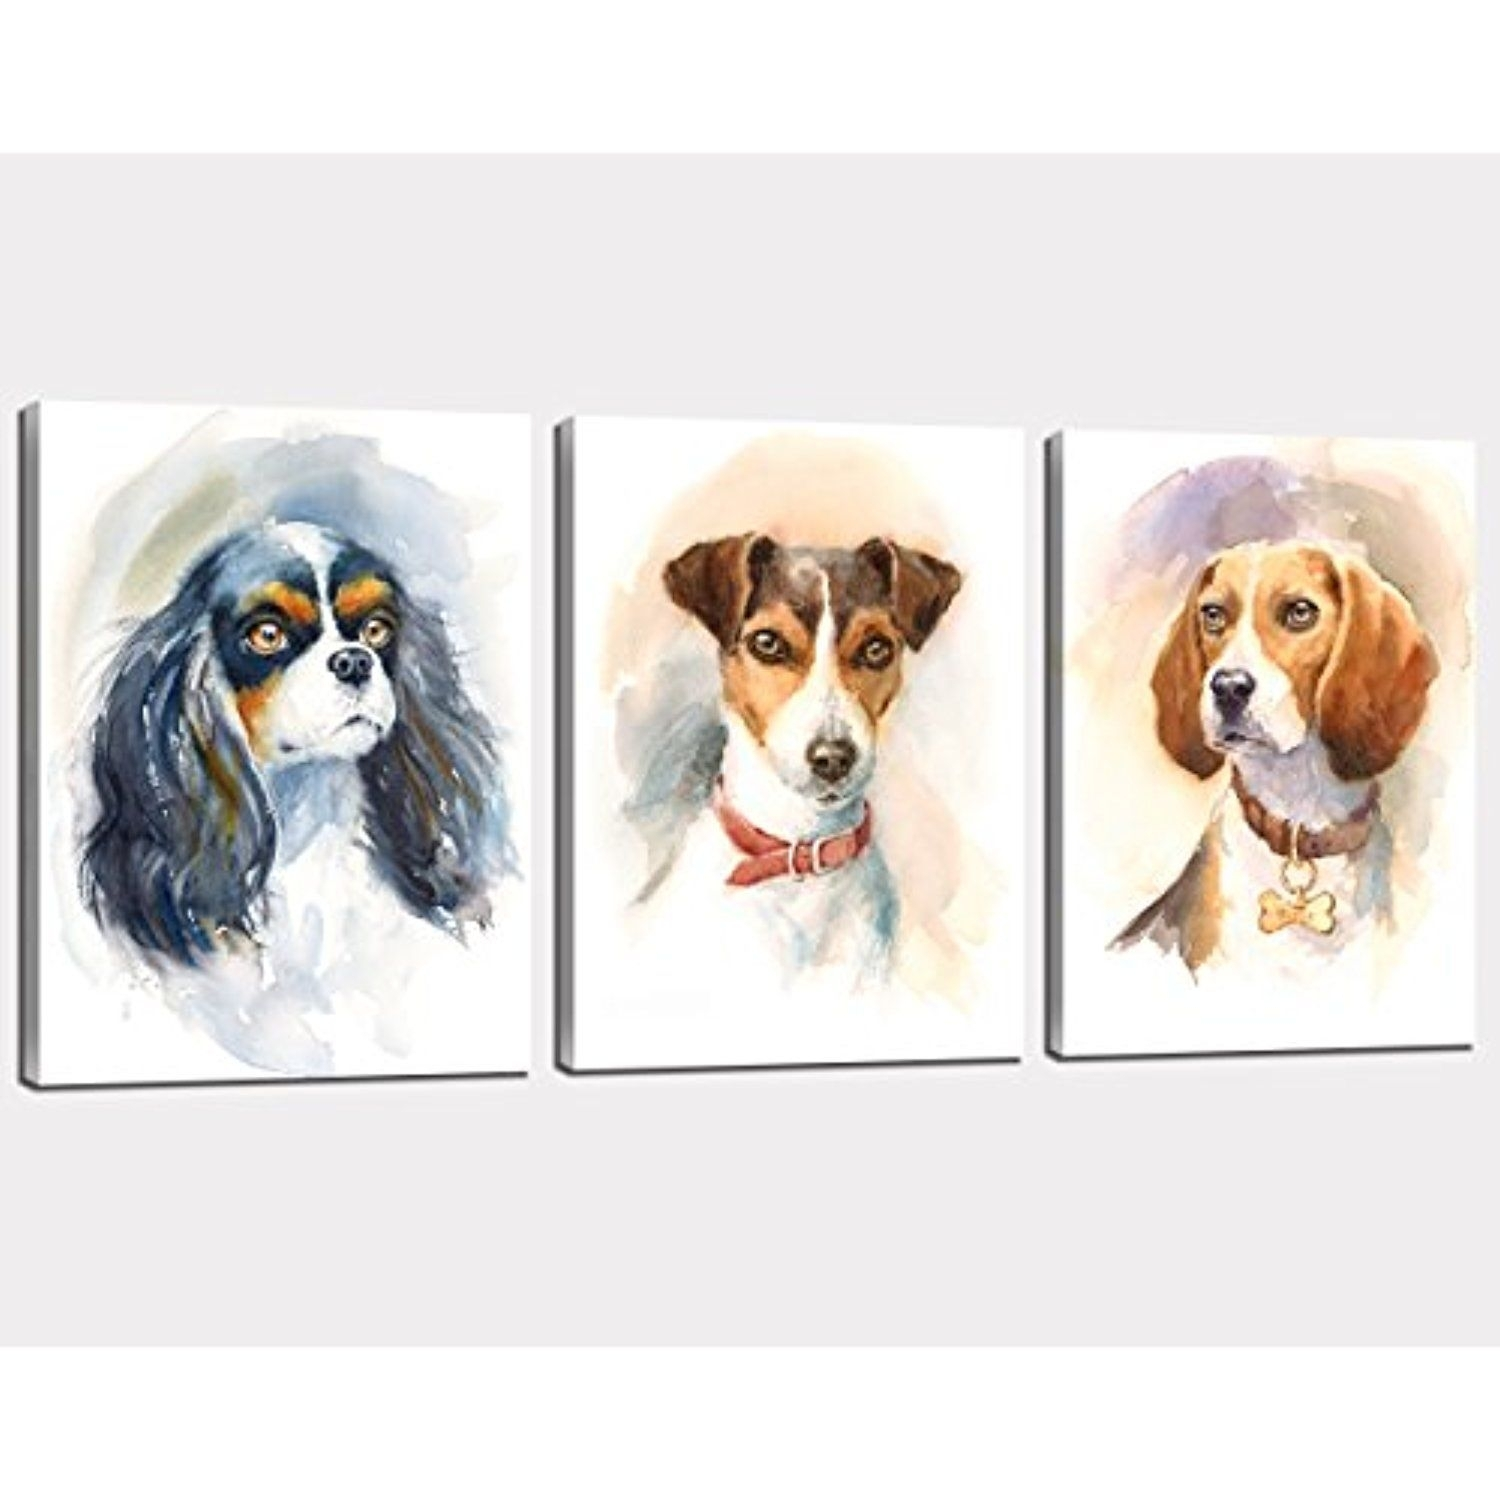 Nan Wind 3Pcs Modern Giclee Dogs Canvas Prints Cute Animals Wall pertaining to Recent Dogs Canvas Wall Art